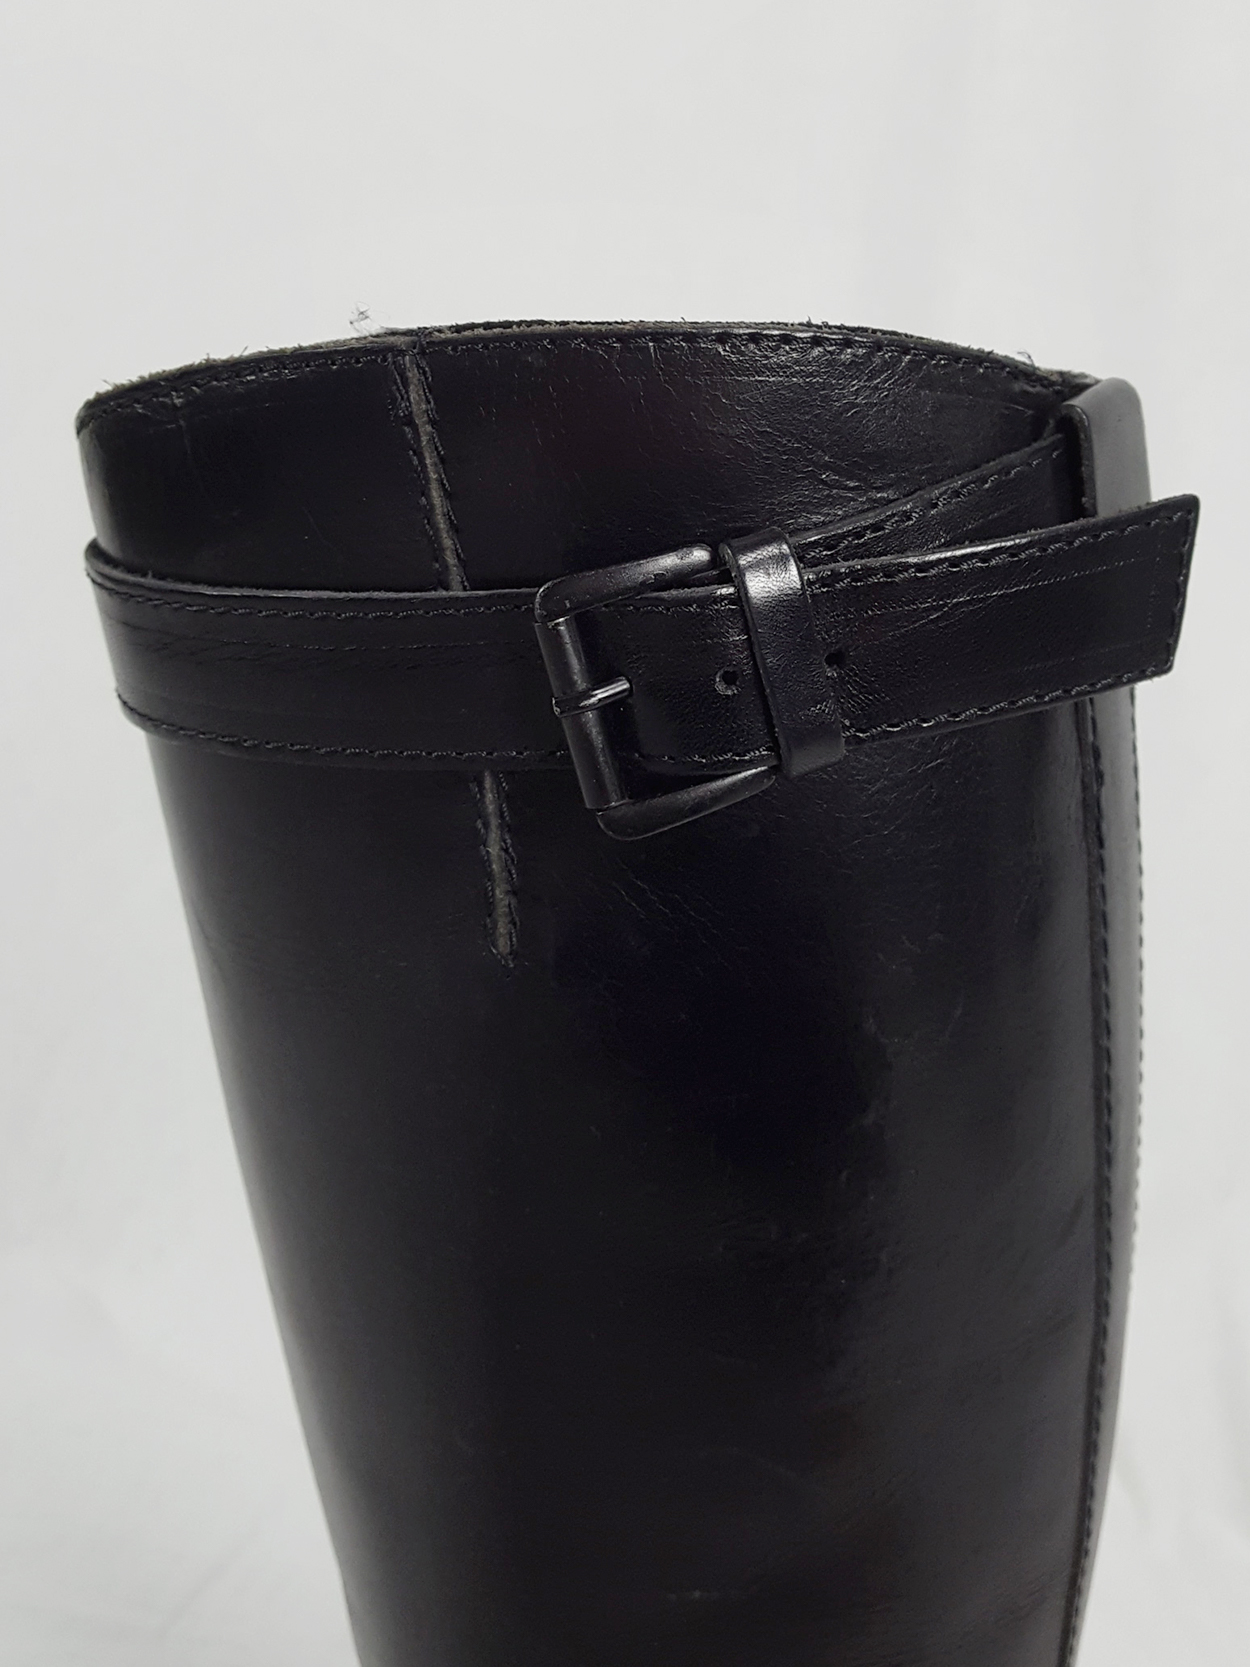 vaniitas vintage Ann Demeulemeester tall black wedge boots with belt strap detail 154129